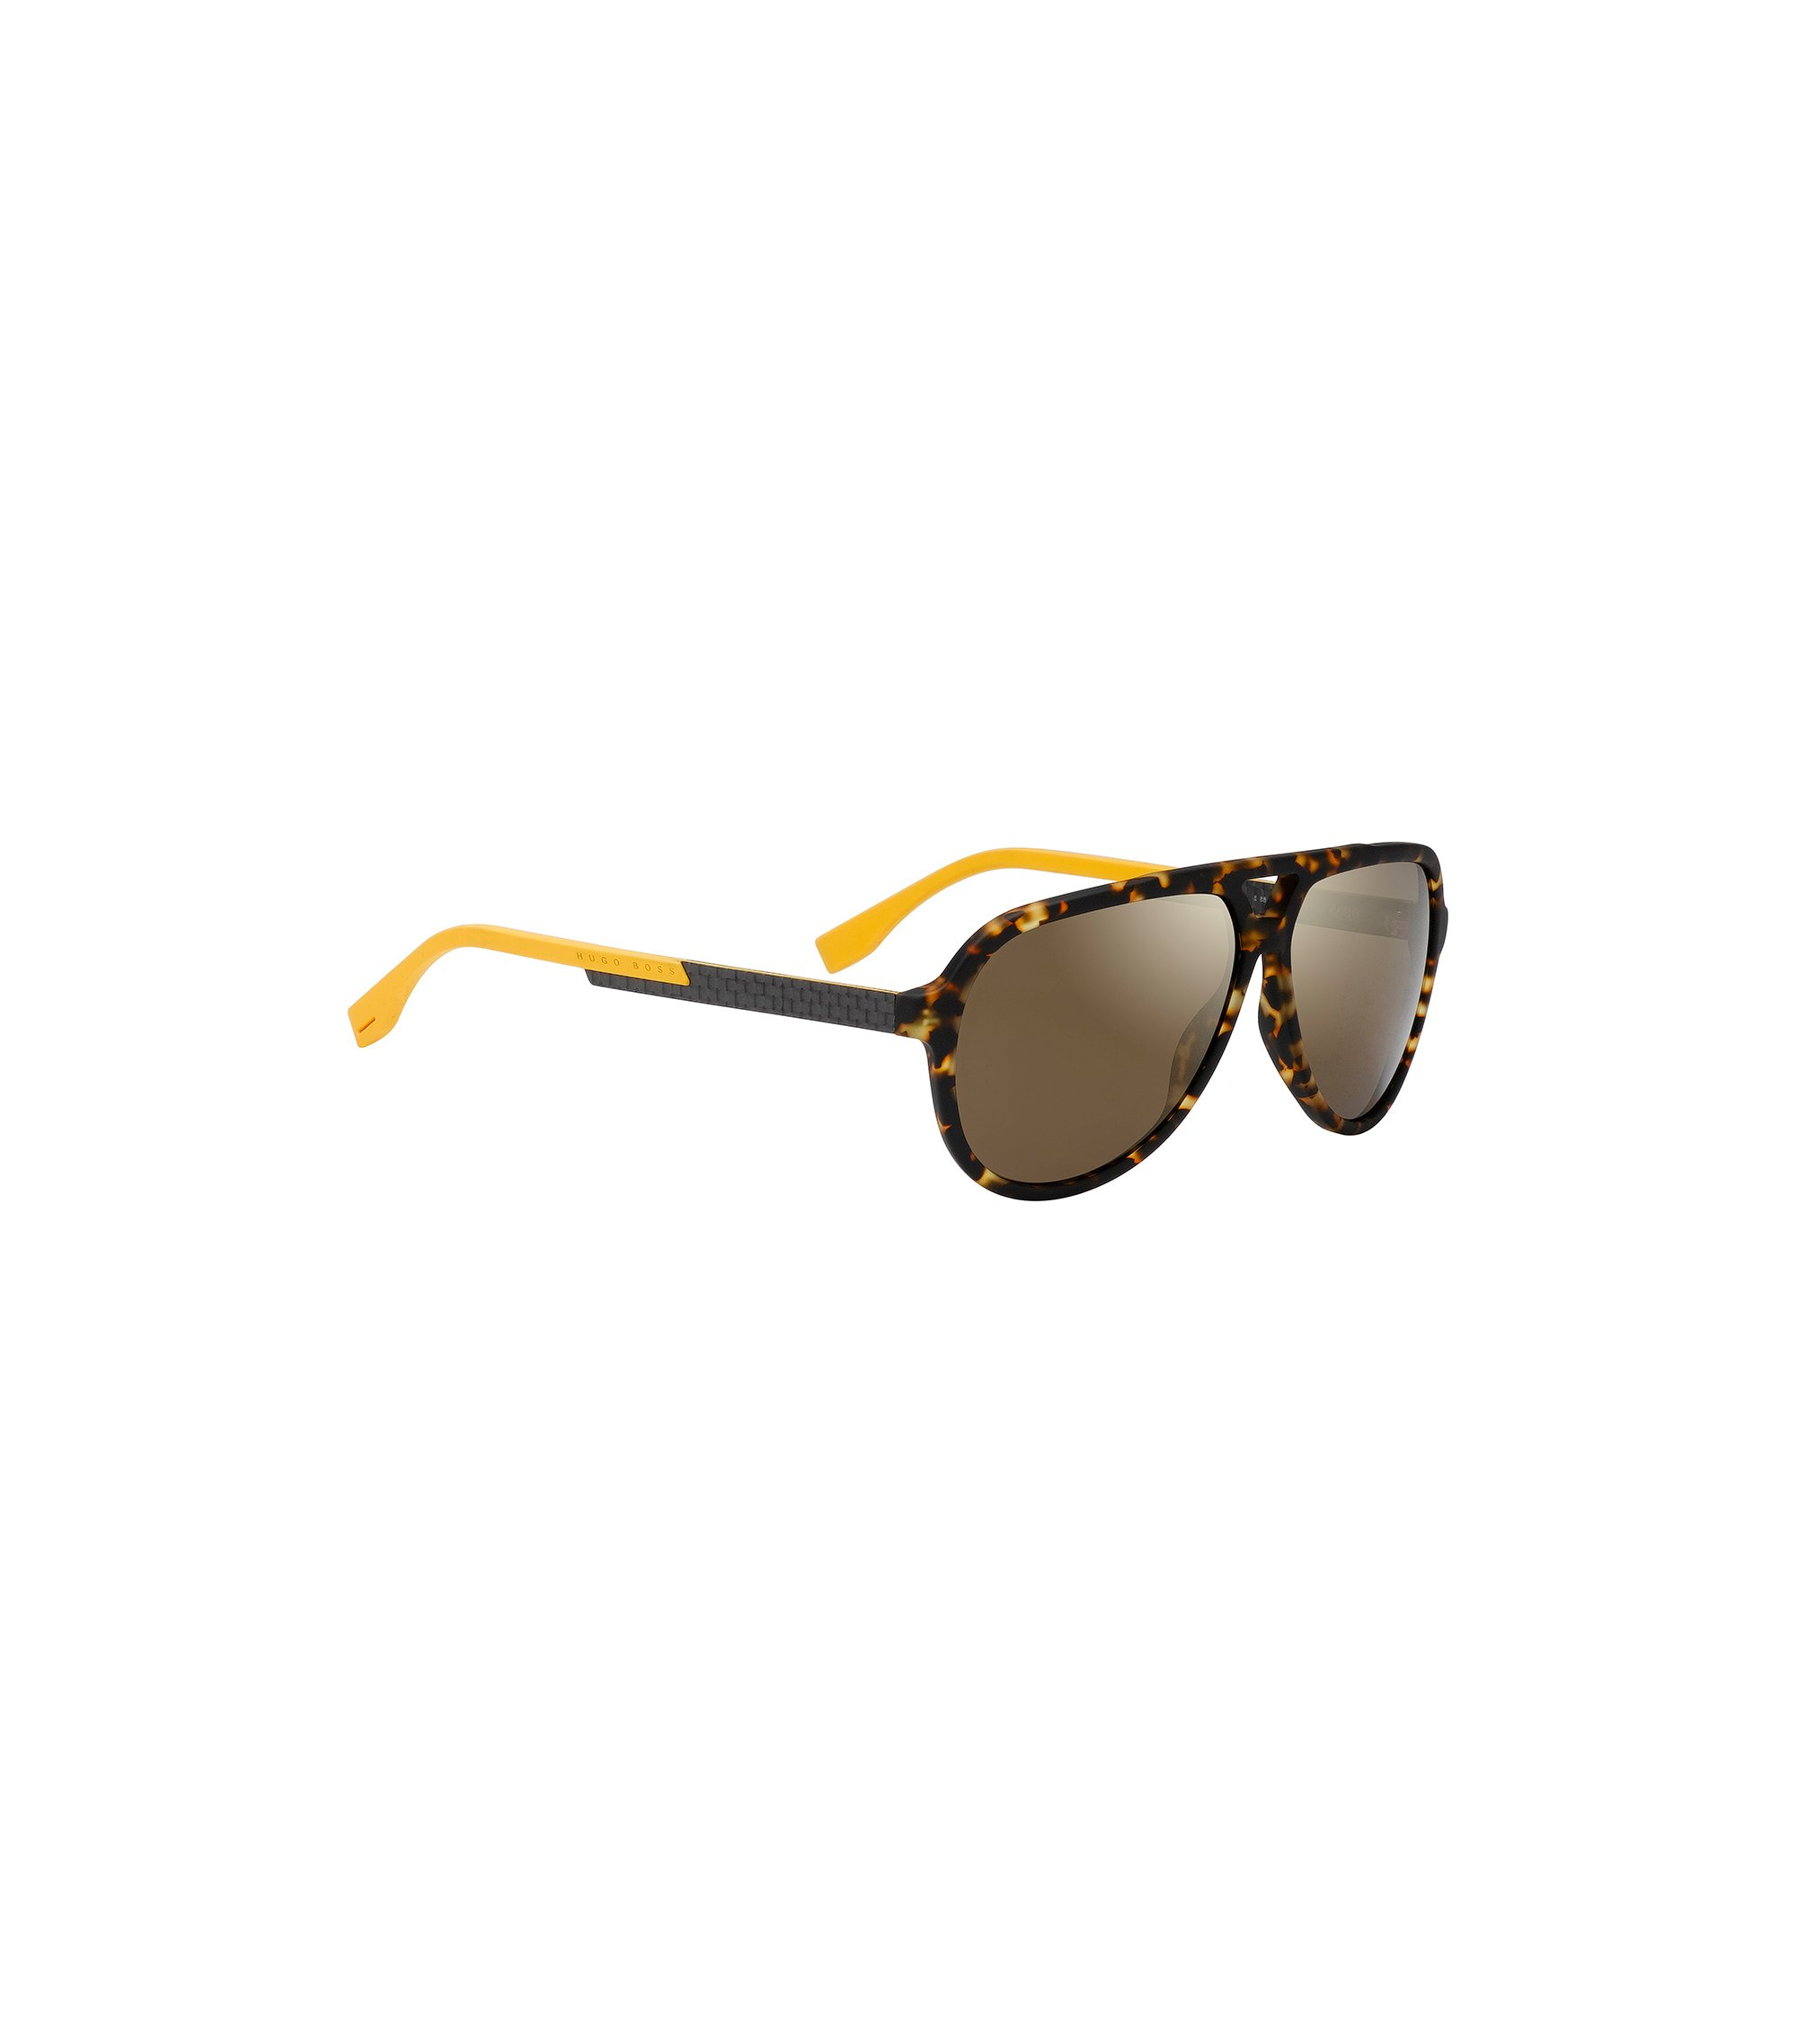 Gafas de sol: 'BOSS 0731/S', Assorted-Pre-Pack